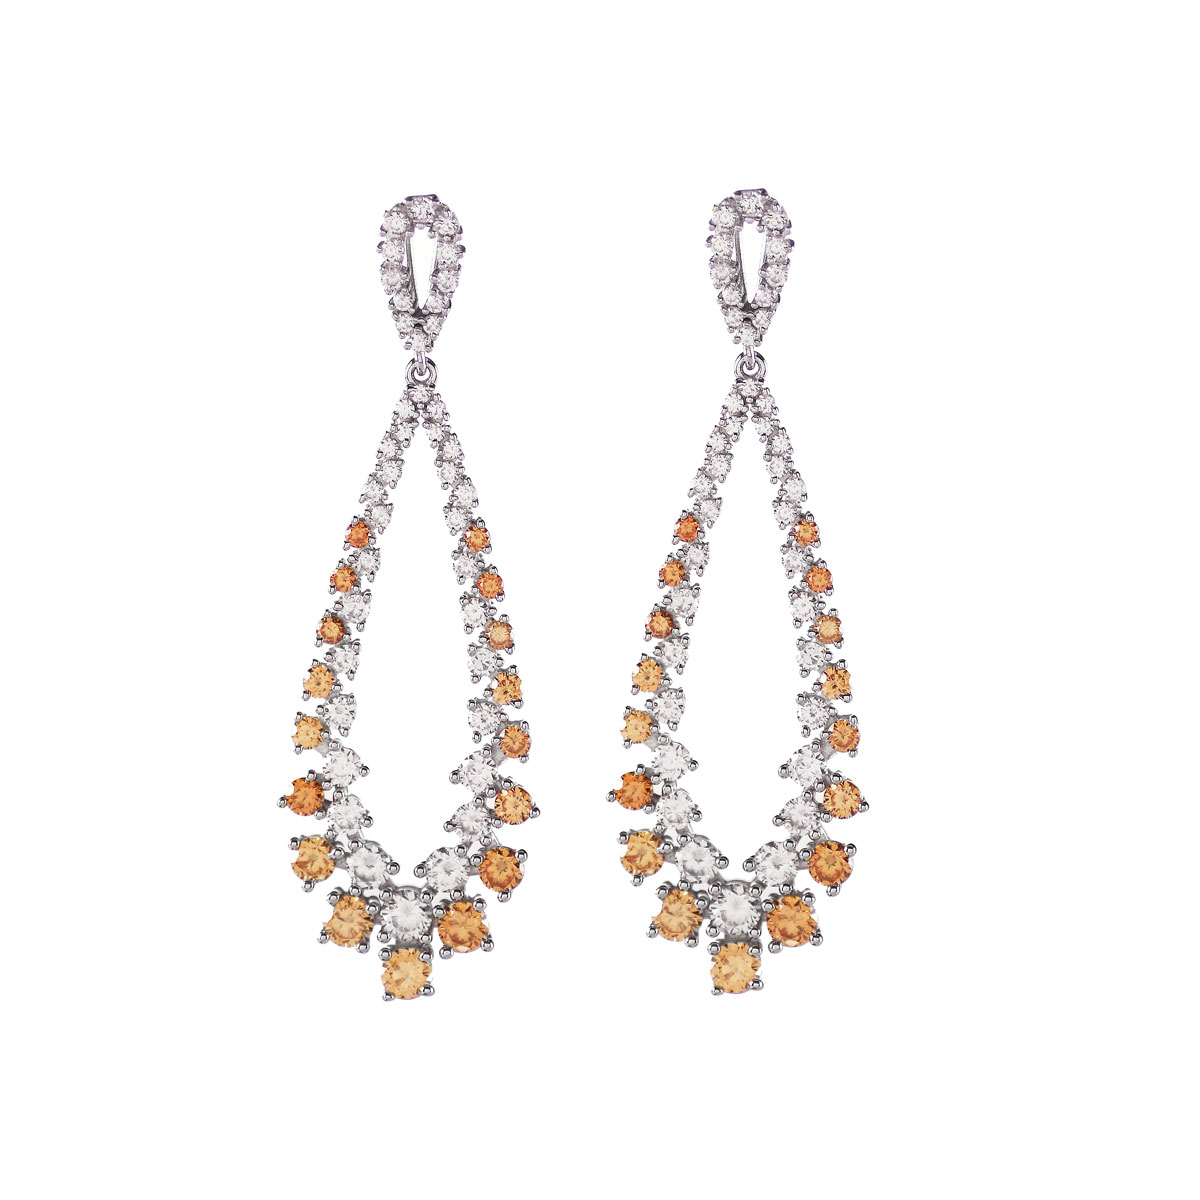 Cashs Ireland, Eve Crystal and Amber Pierced Earrings